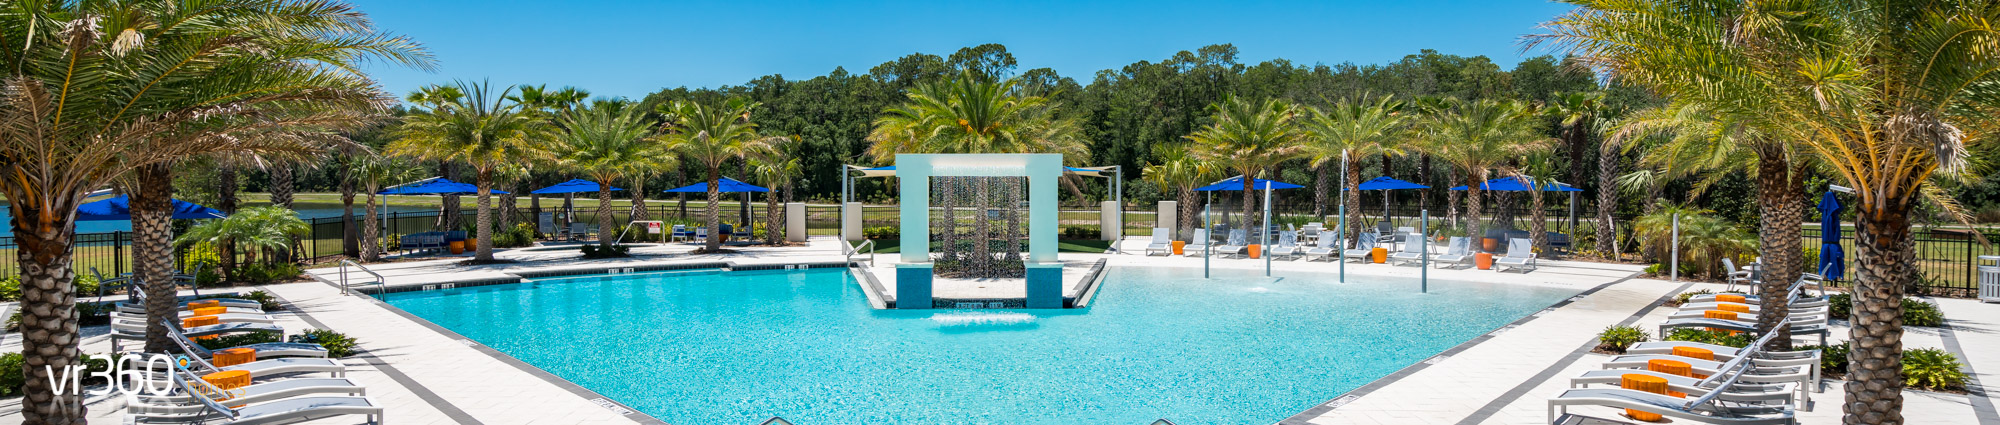 Sonoma Resort in Kissimmee, Florida. Luxury Orlando villas and vacation rentals.